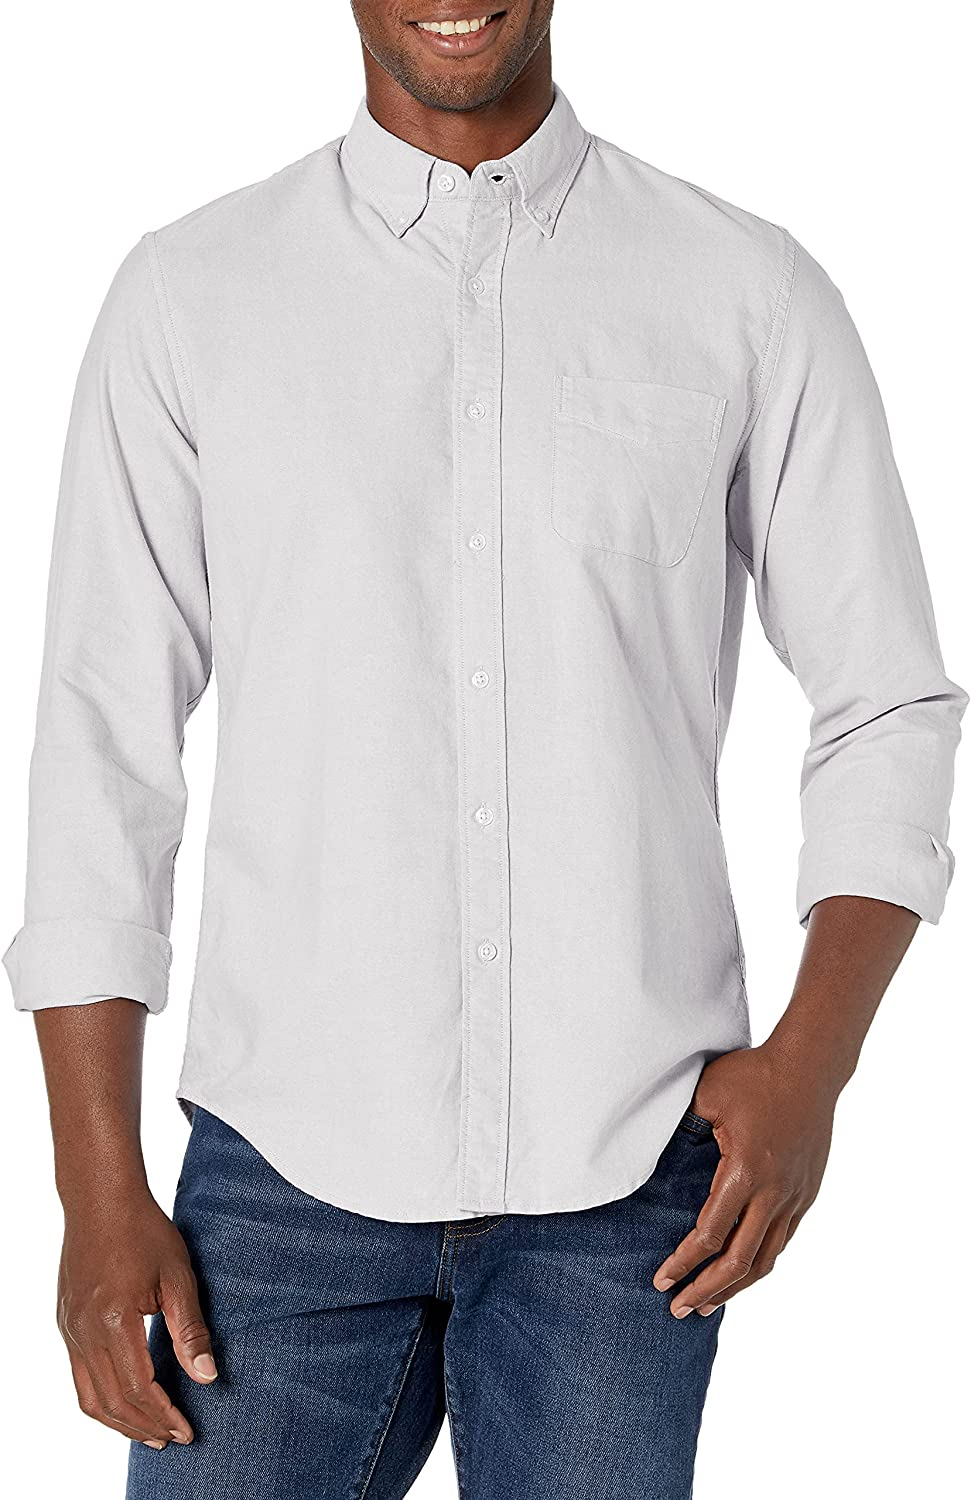 J.Crew Mercantile Men's Classic-fit Long-Sleeve Stretch Solid Oxford Shirt